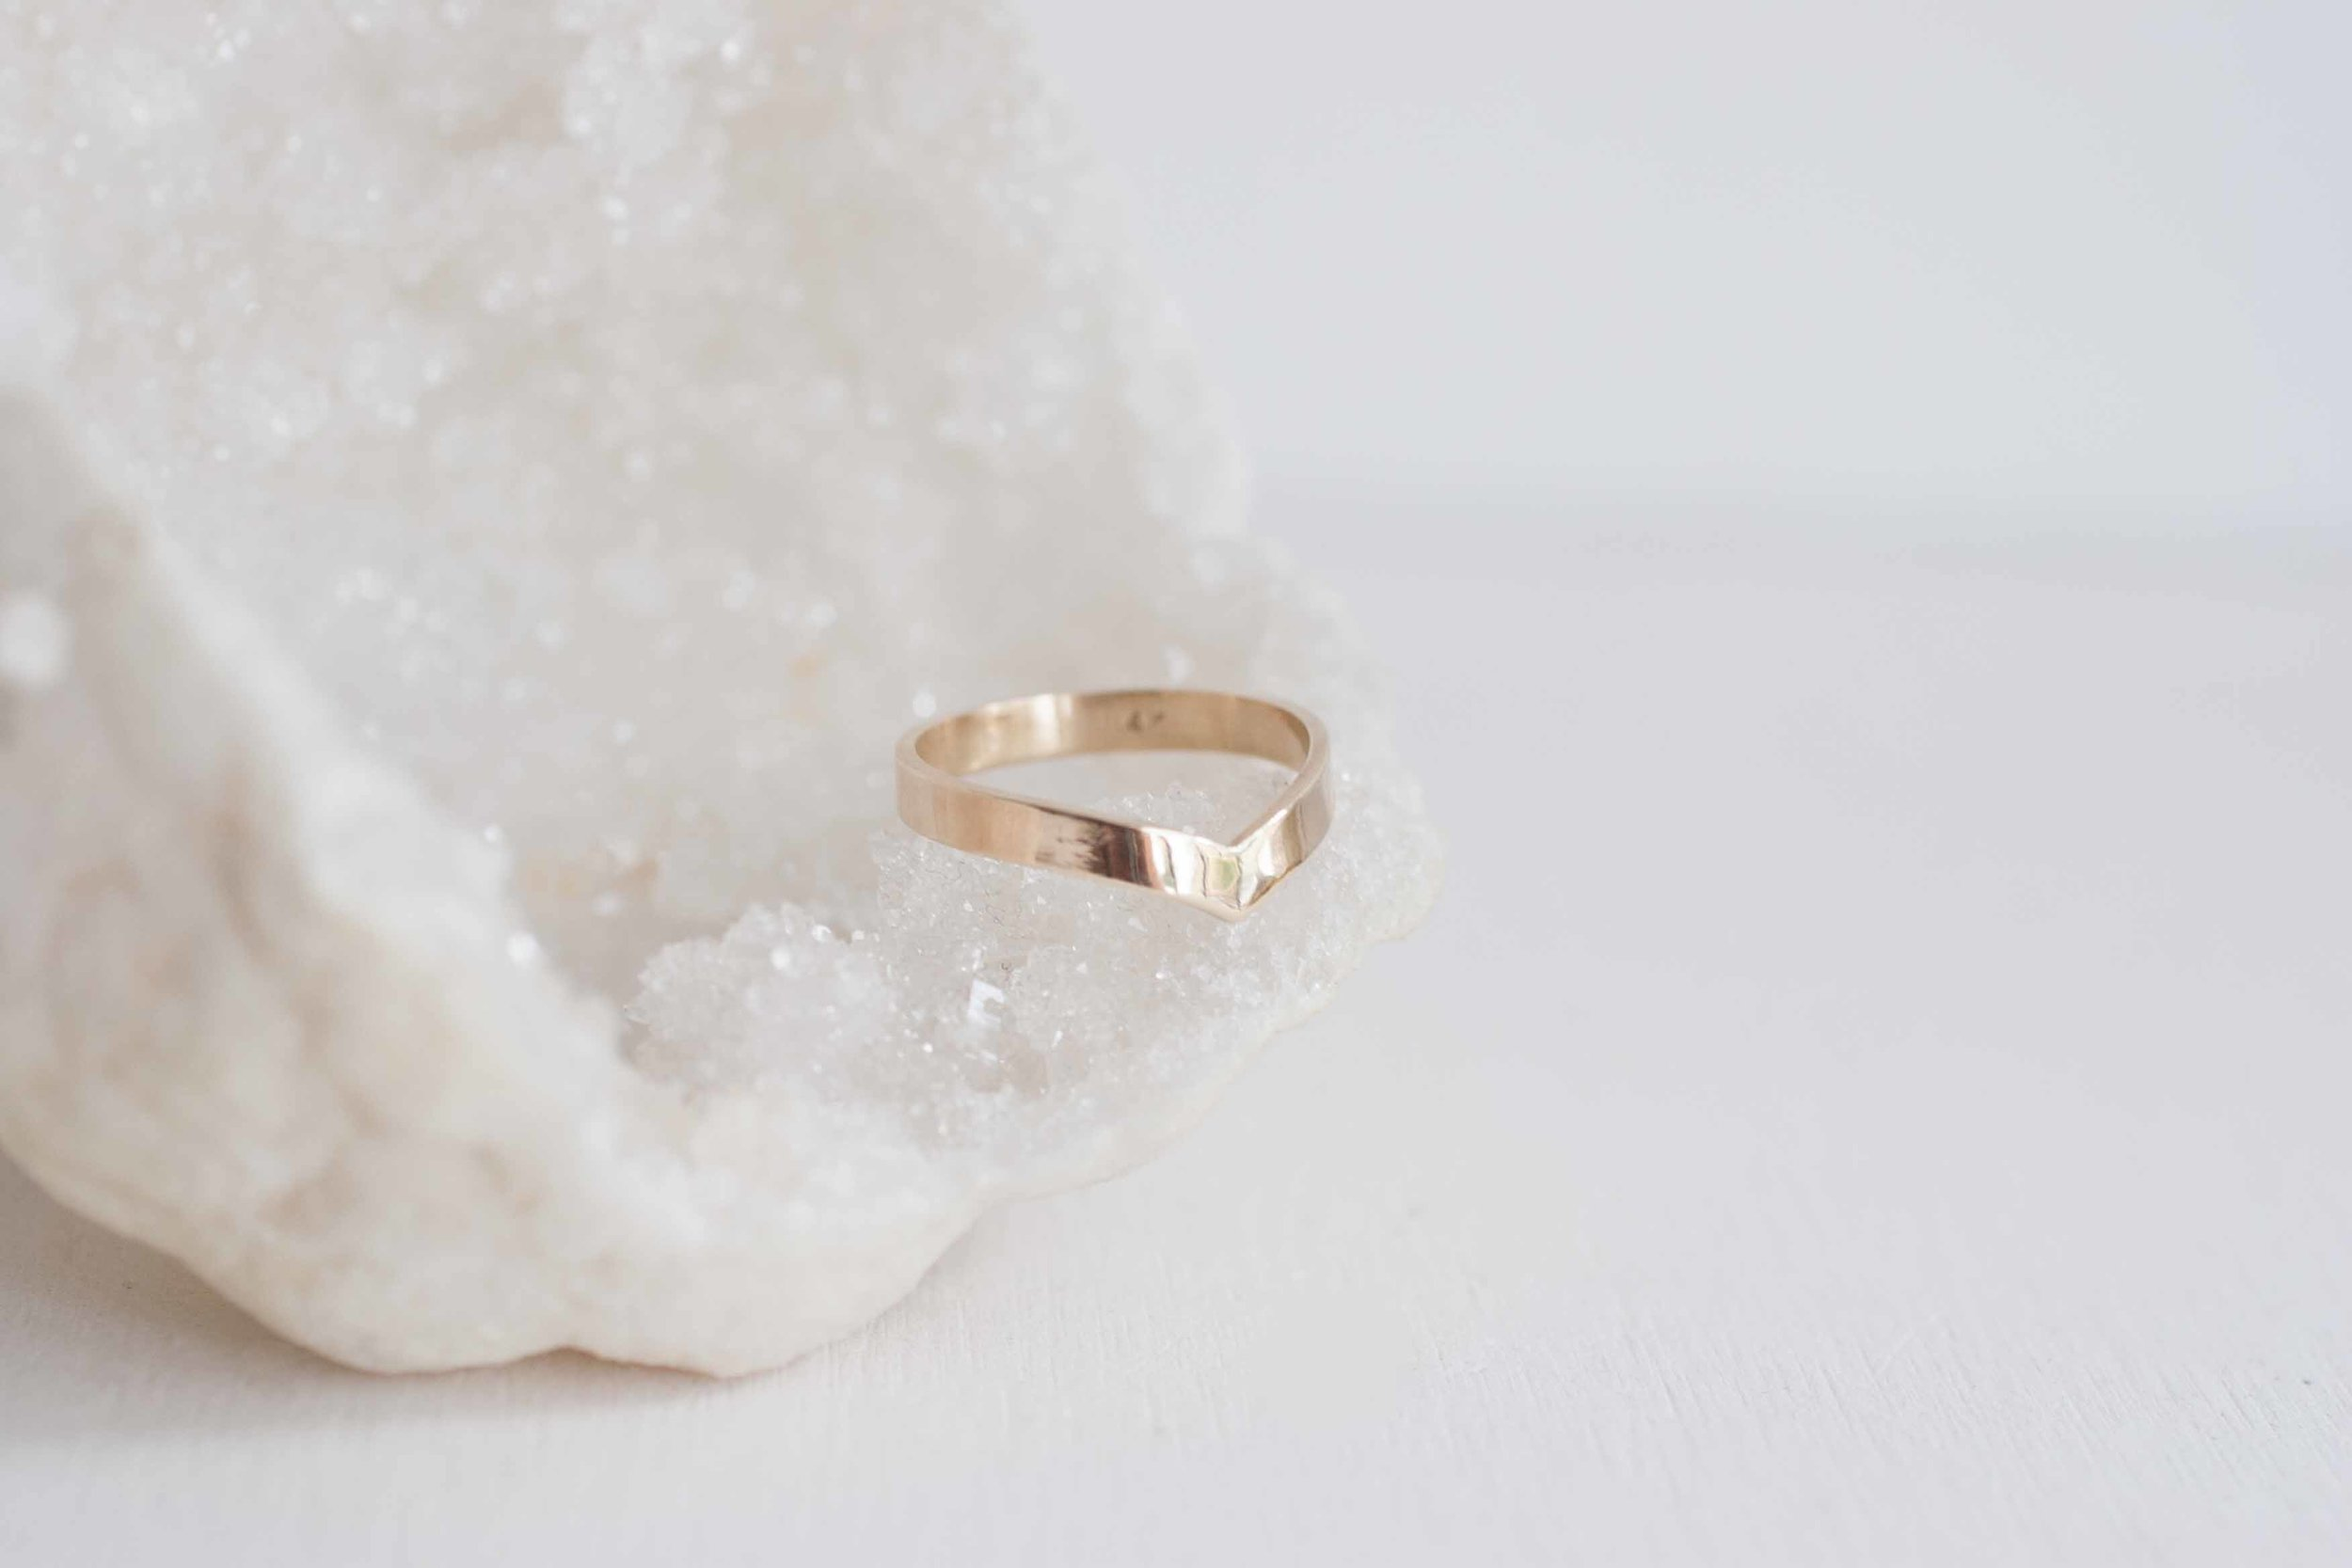 3 x 1 Contour Flat Ring V Wedding Band 14k Recycled Gold